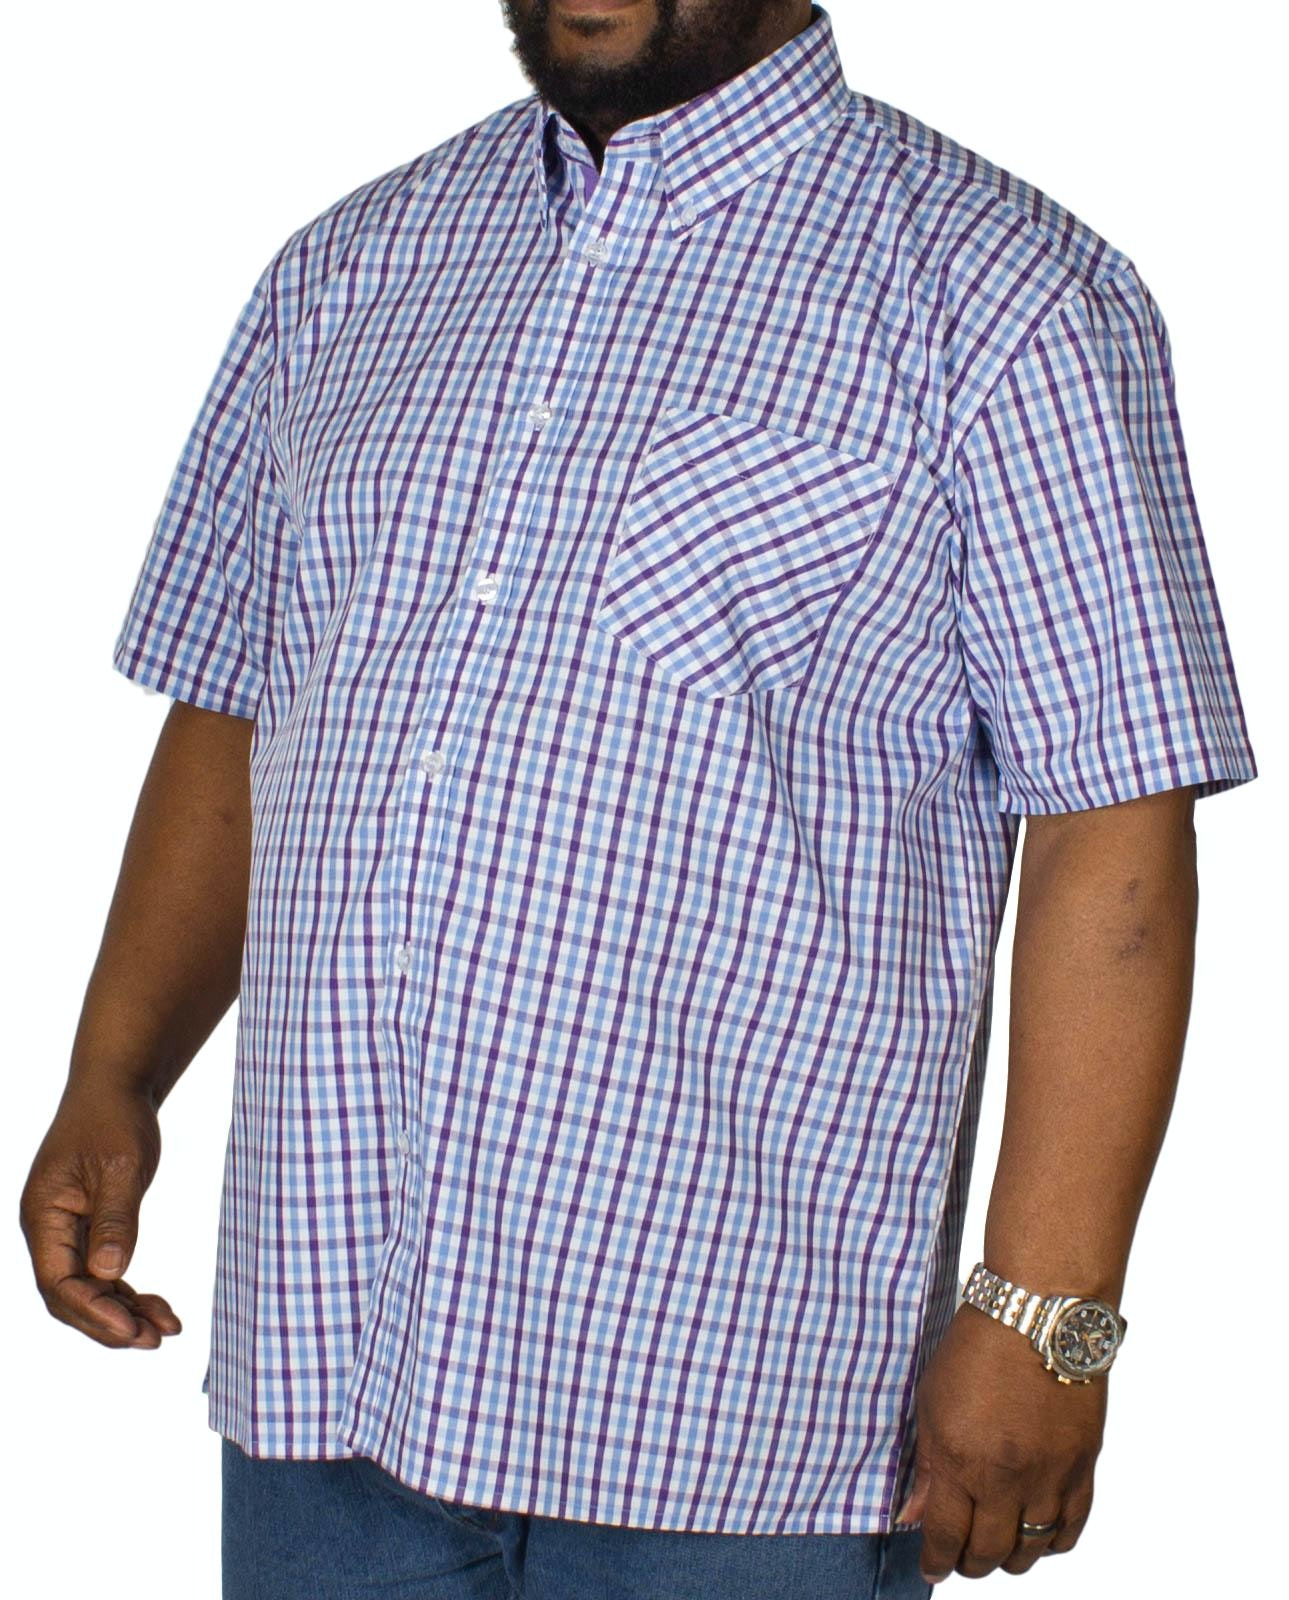 KAM Check Short Sleeved Shirt Purple/Blue